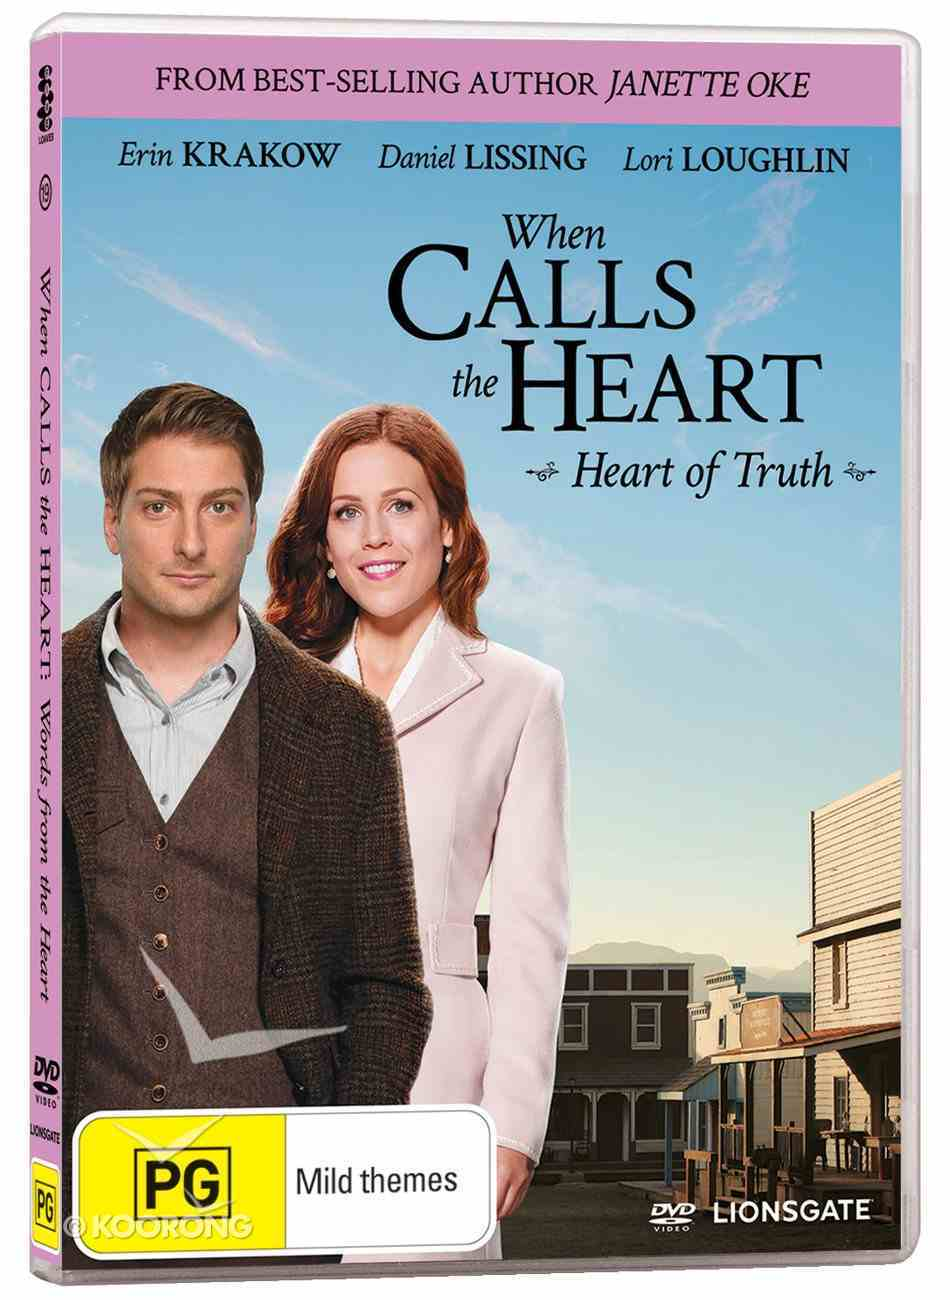 When Calls the Heart #19: Heart of Truth DVD